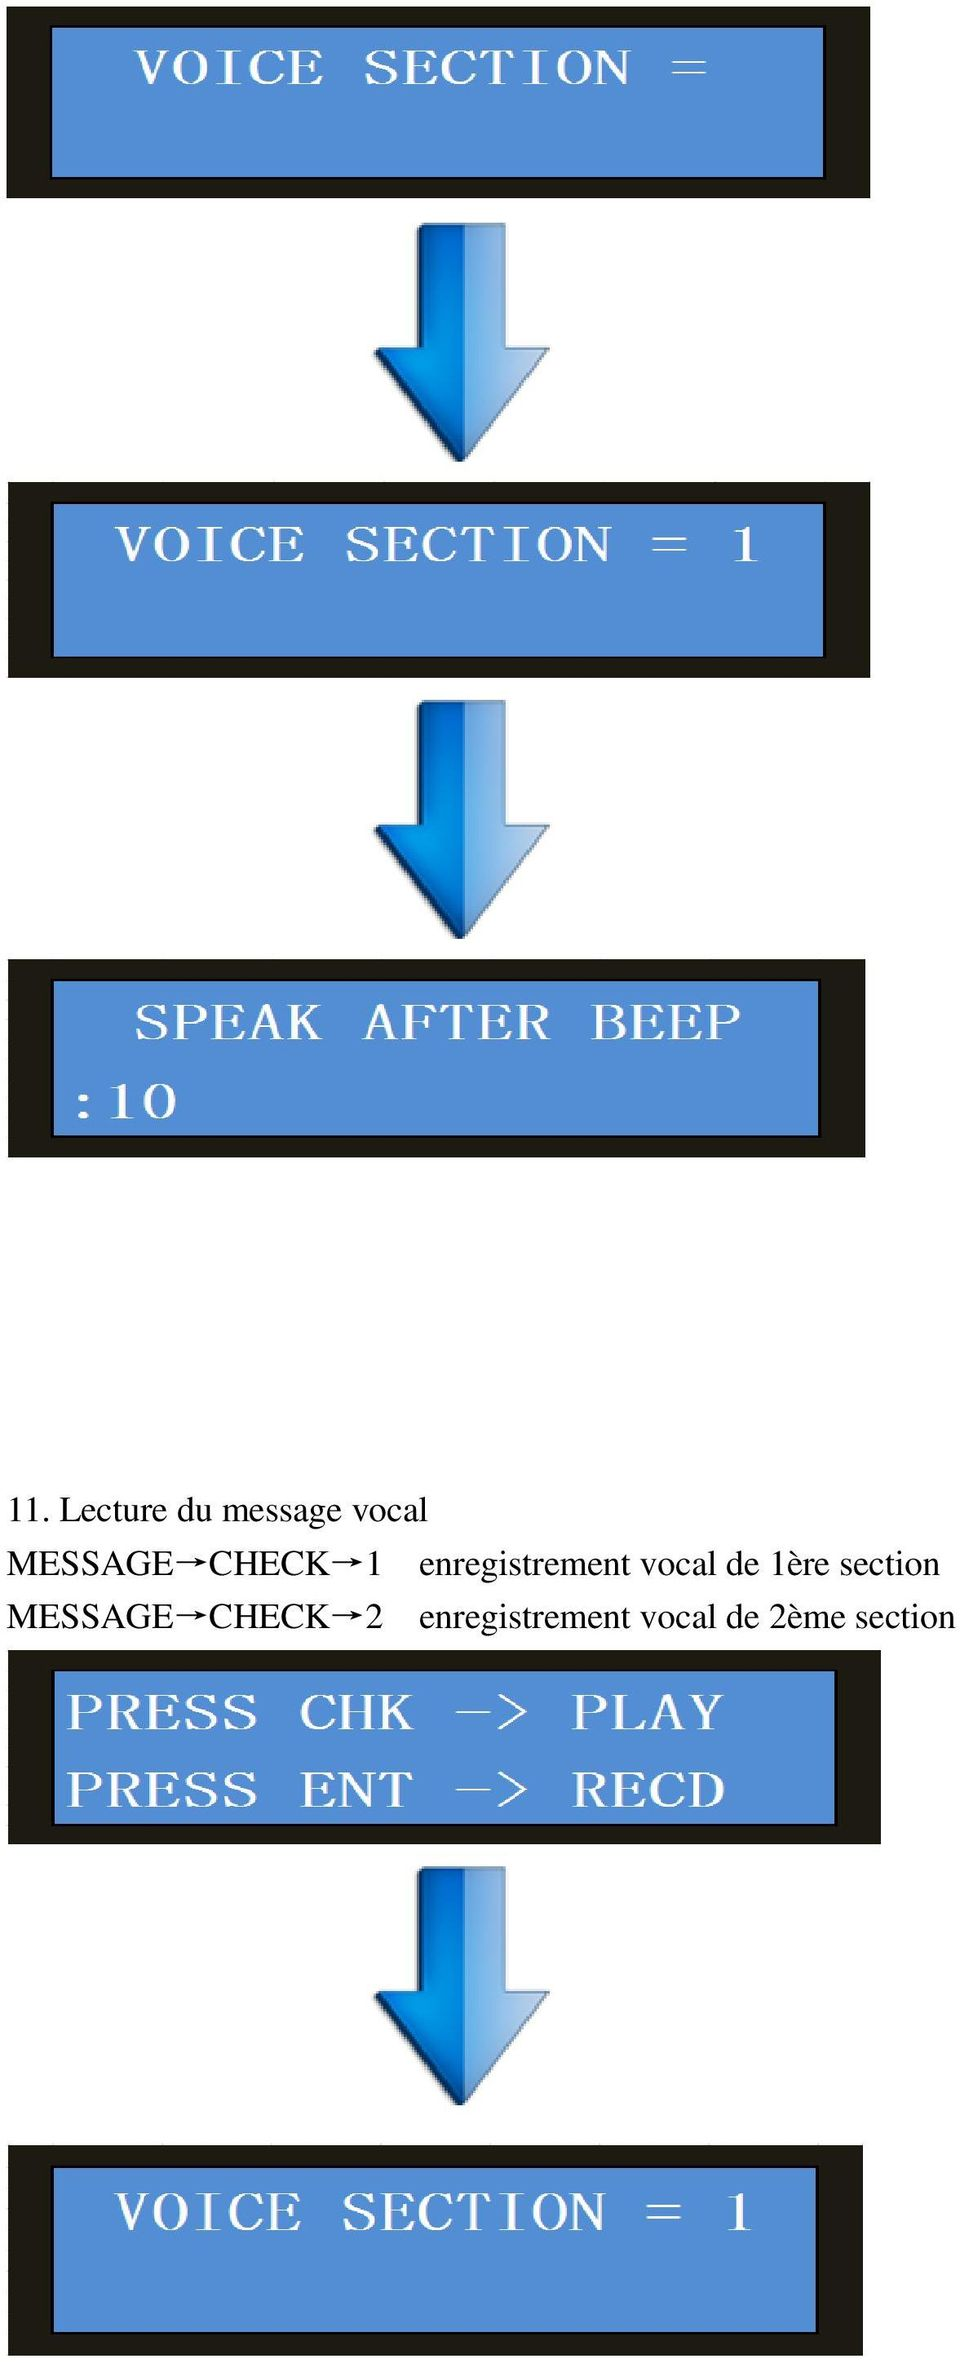 vocal de 1ère section MESSAGE